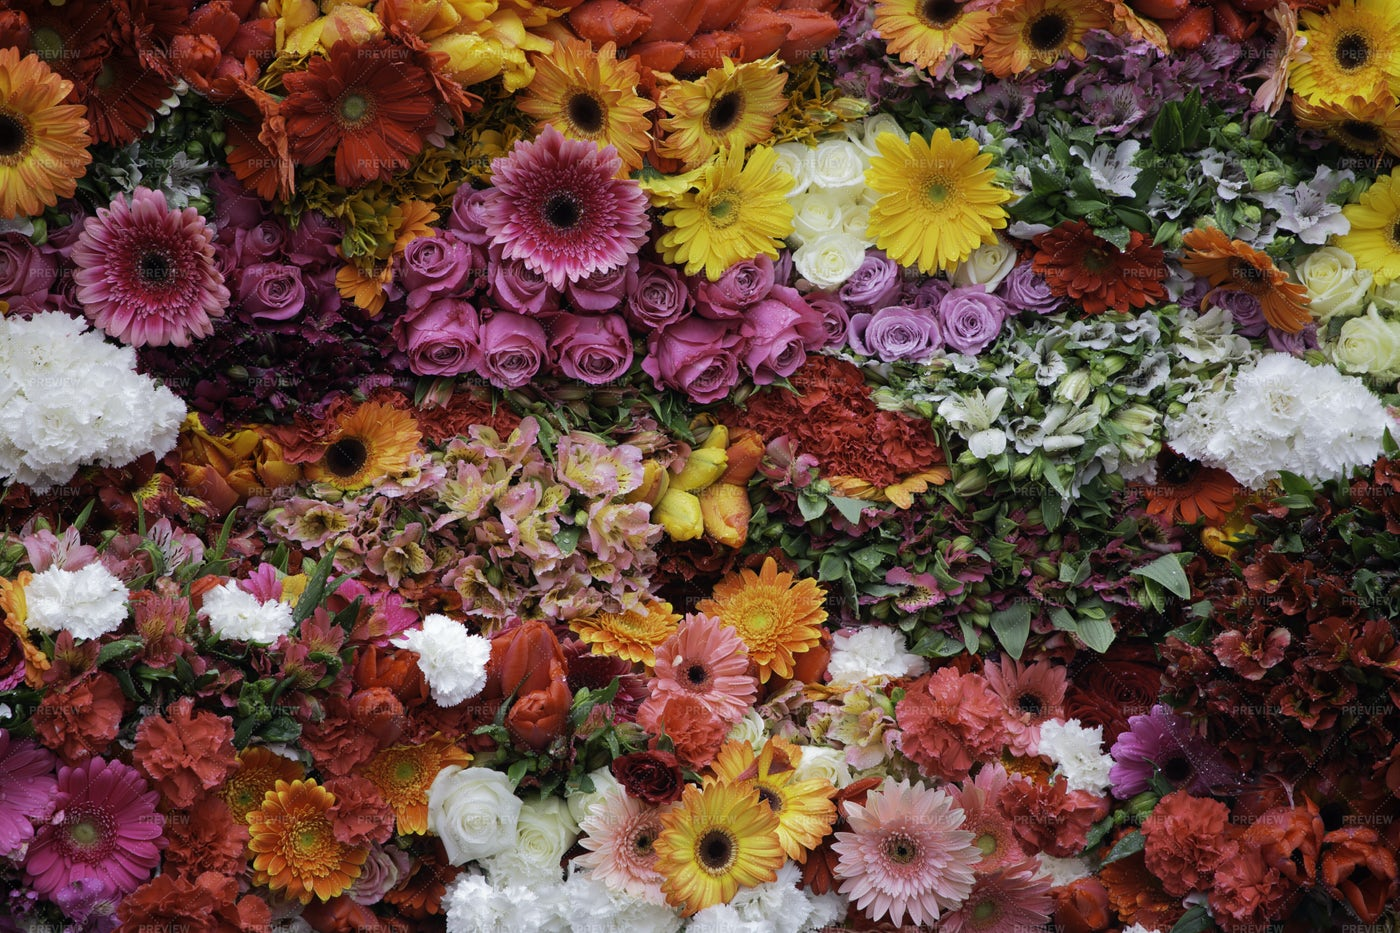 Bouquet Of Colorful Flowers: Stock Photos